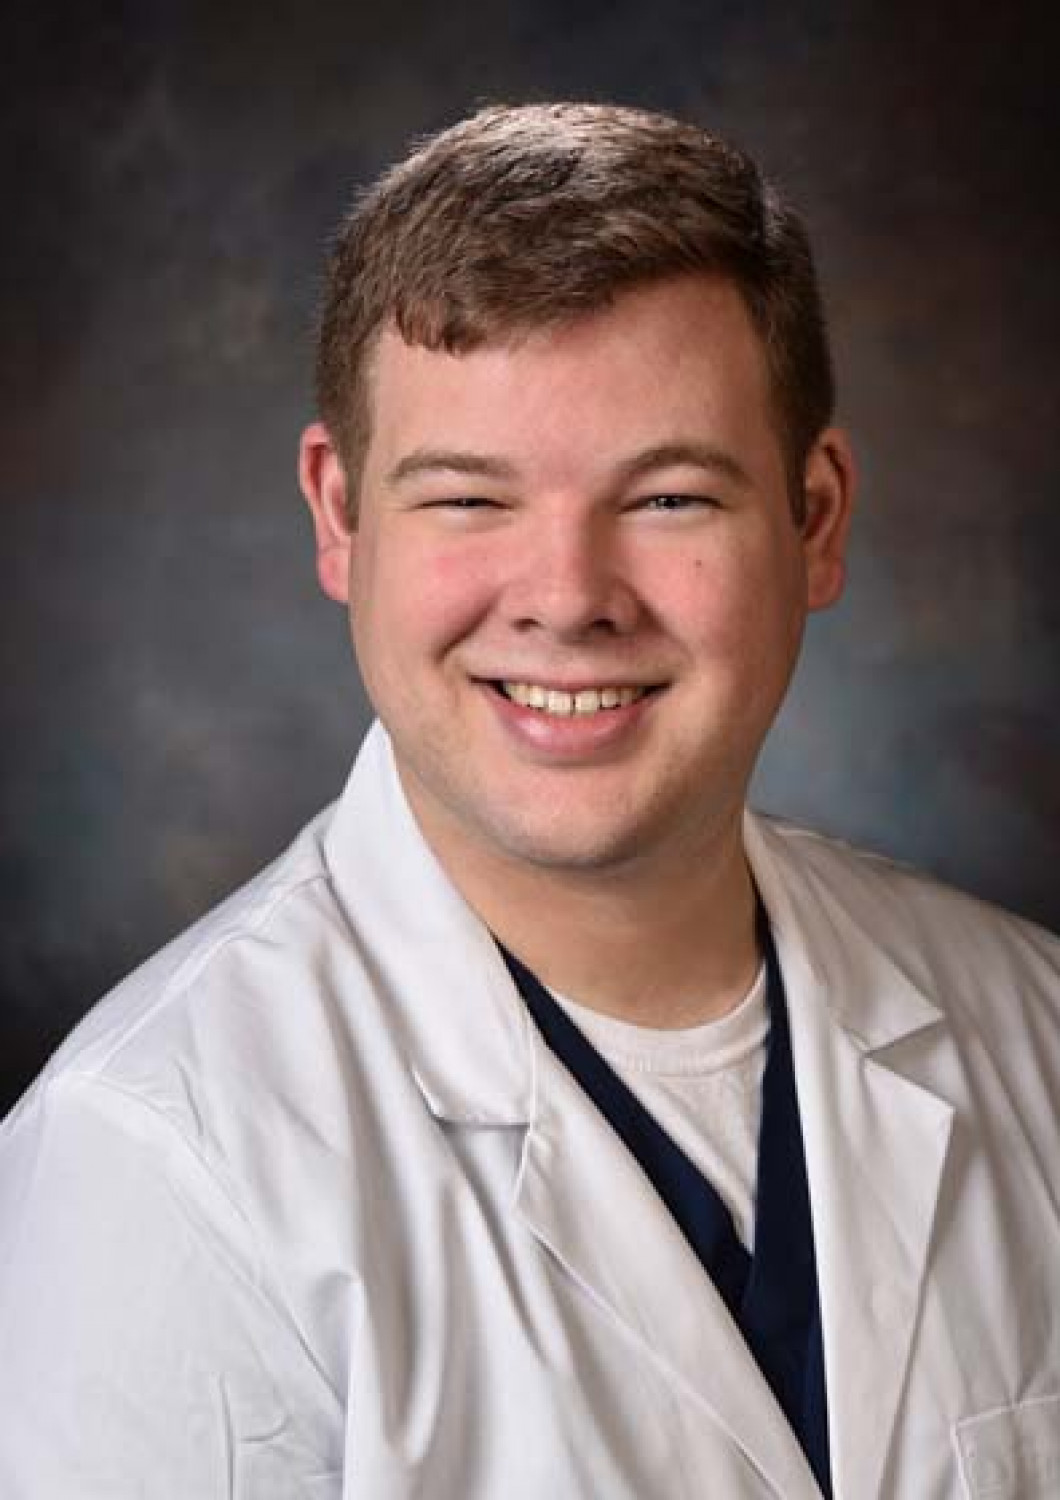 Nathan Stuckey, MD